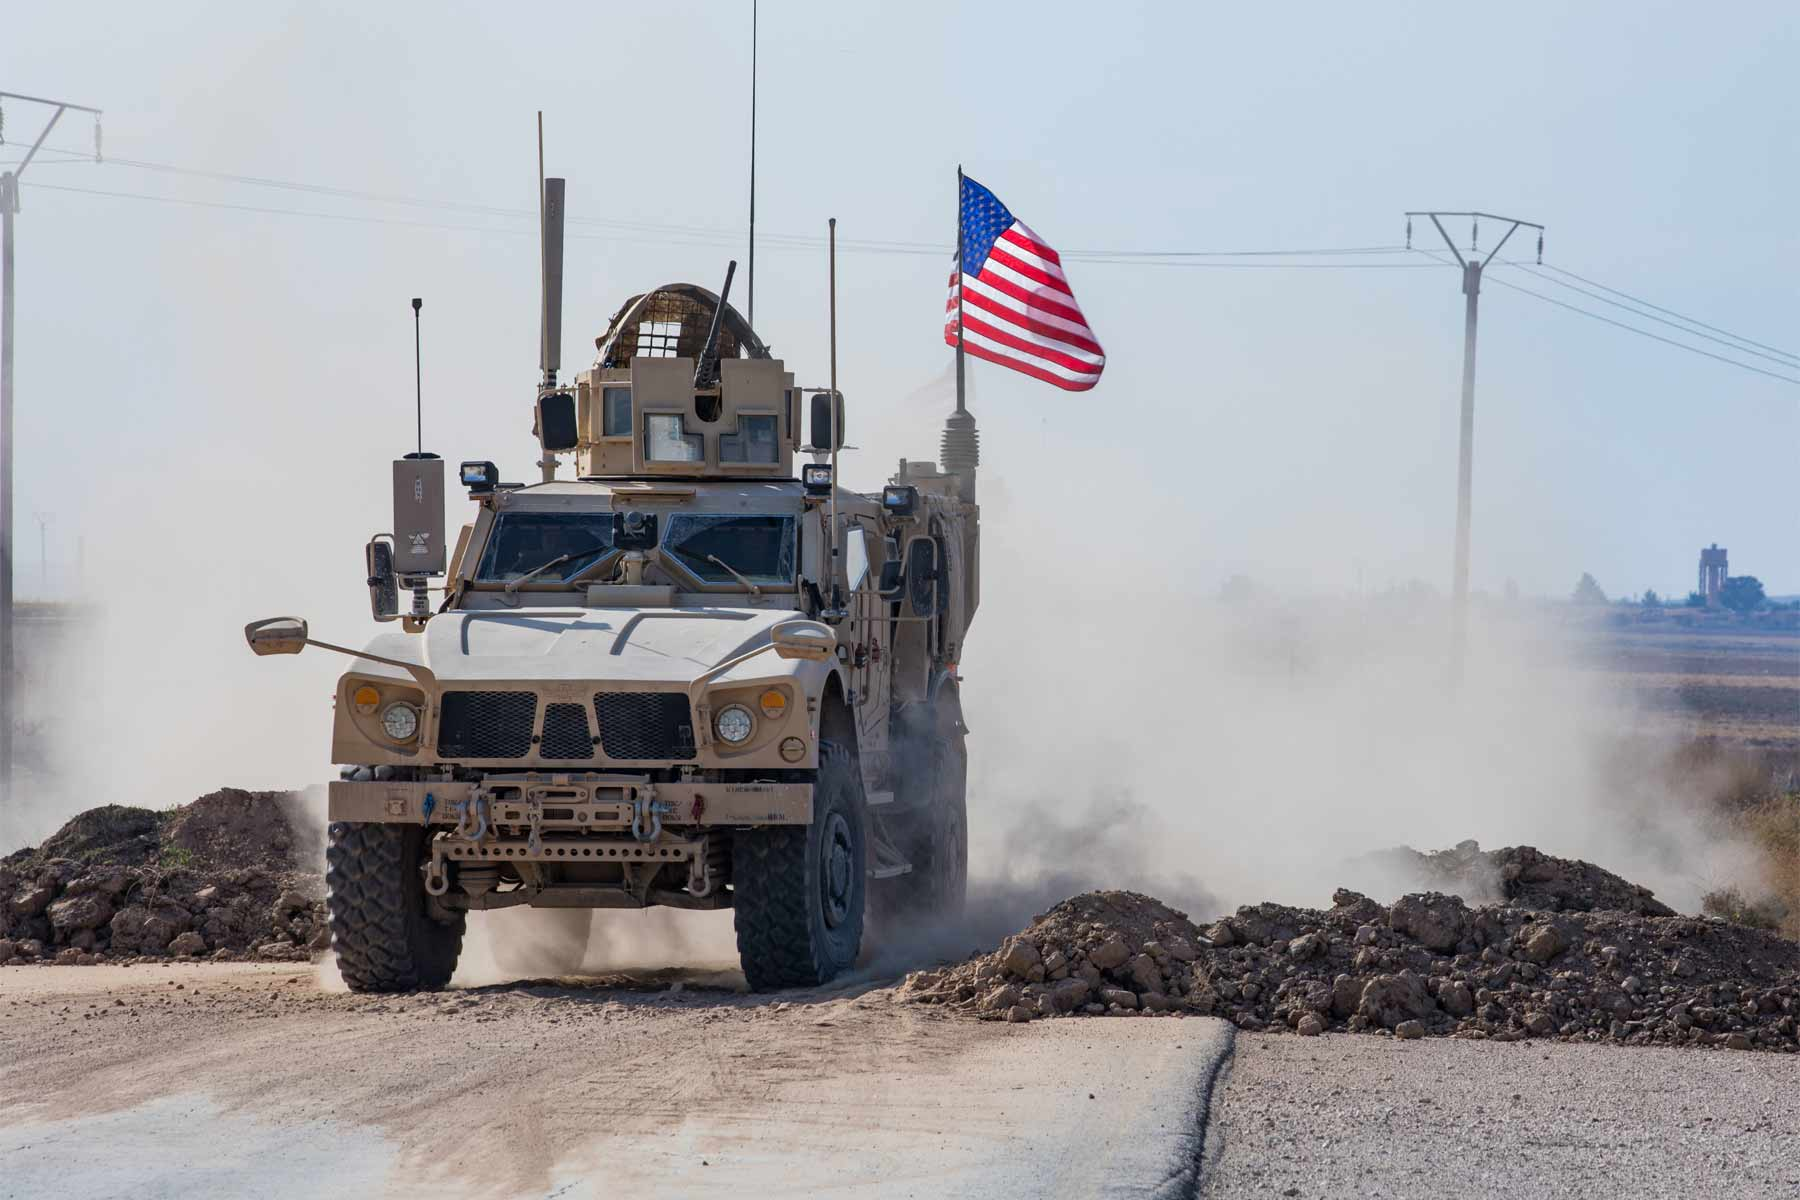 Will the U.S. Withdraw from Syria as it Did from Afghan Base?